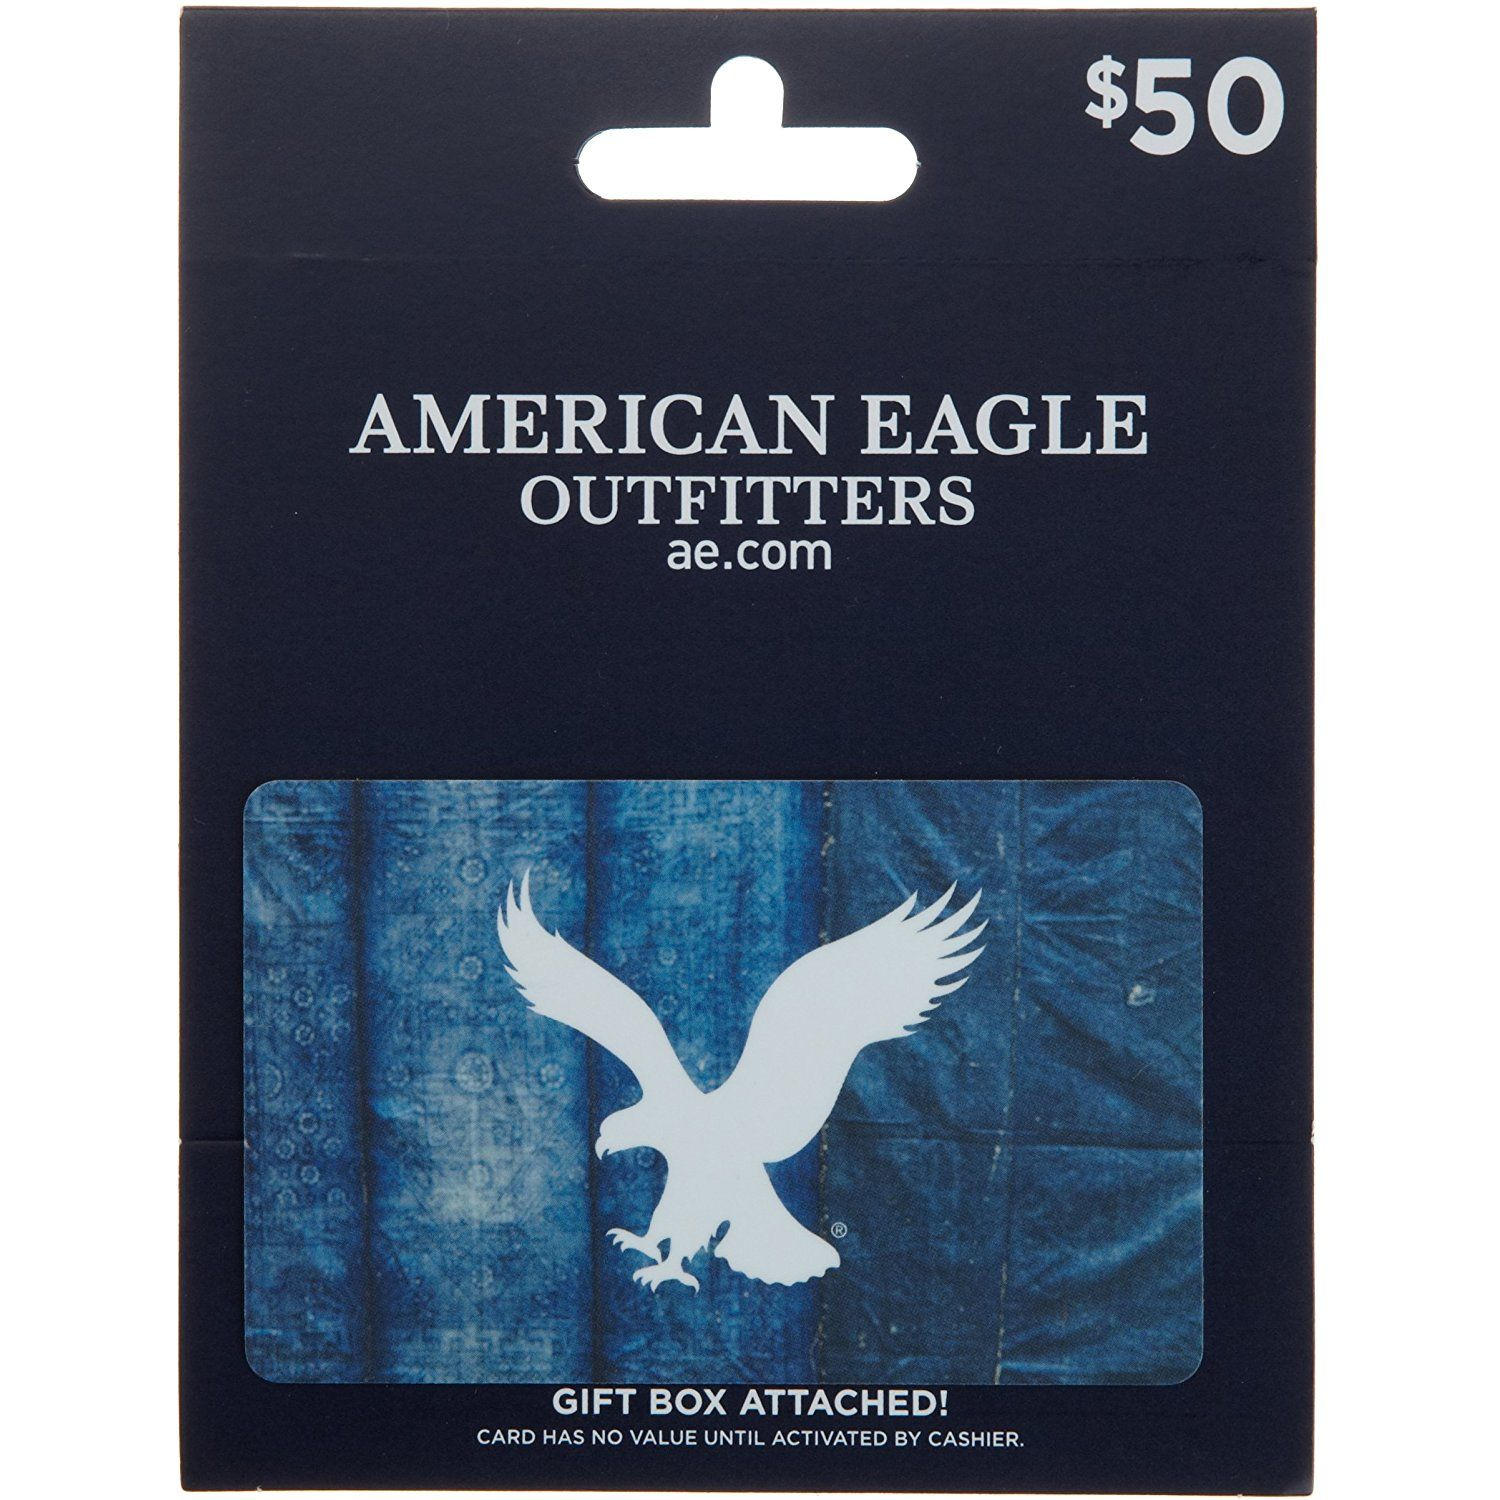 American eagle outfitters gift card check out this great